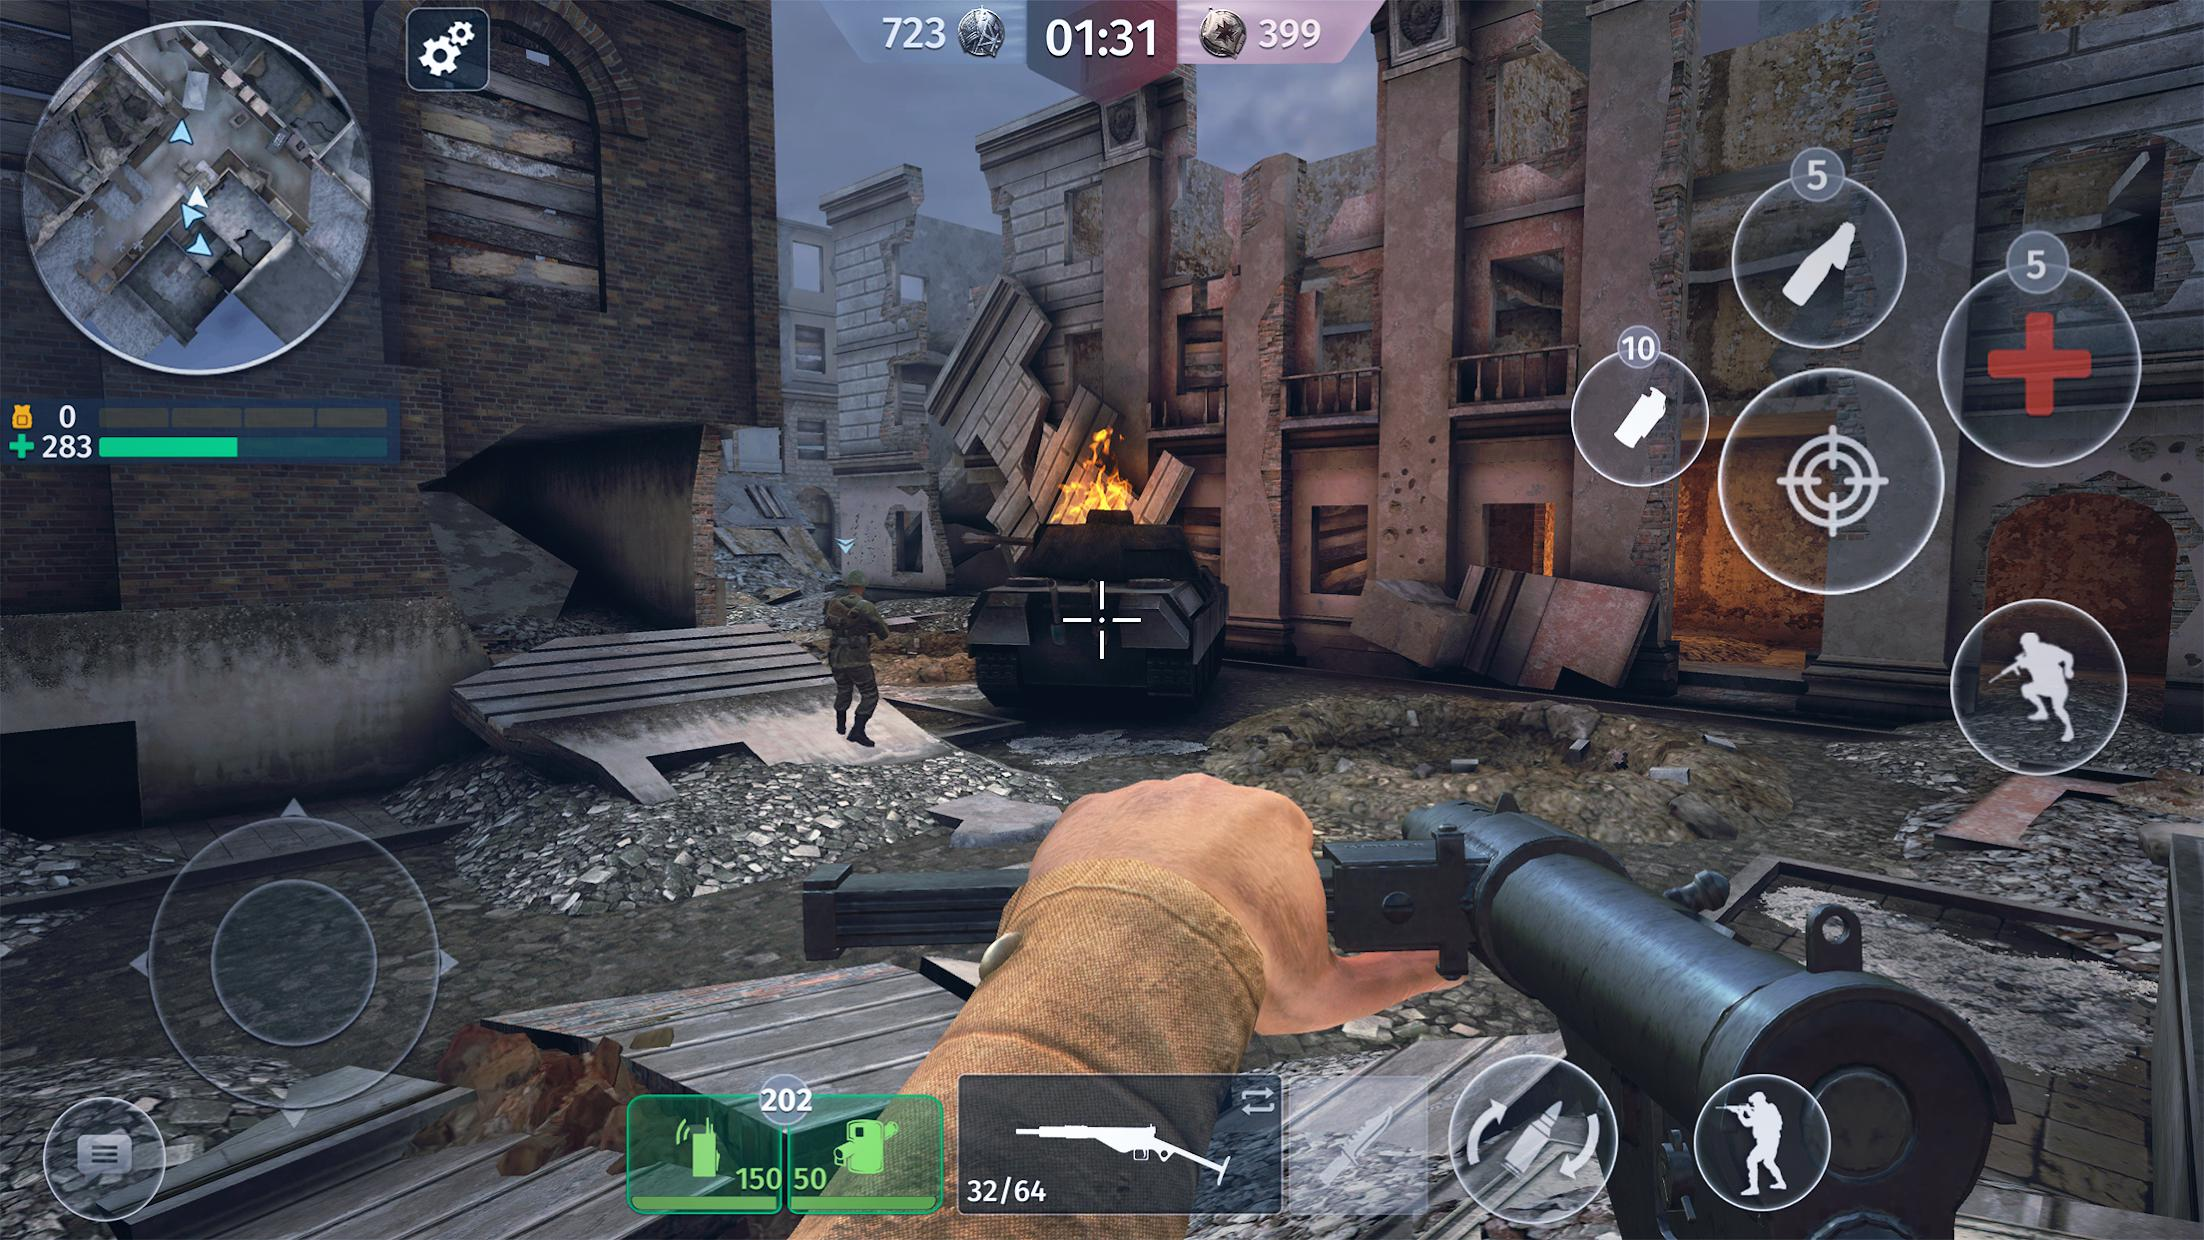 World War 2 - Battle Combat (Online FPS 游戏) 游戏截图2